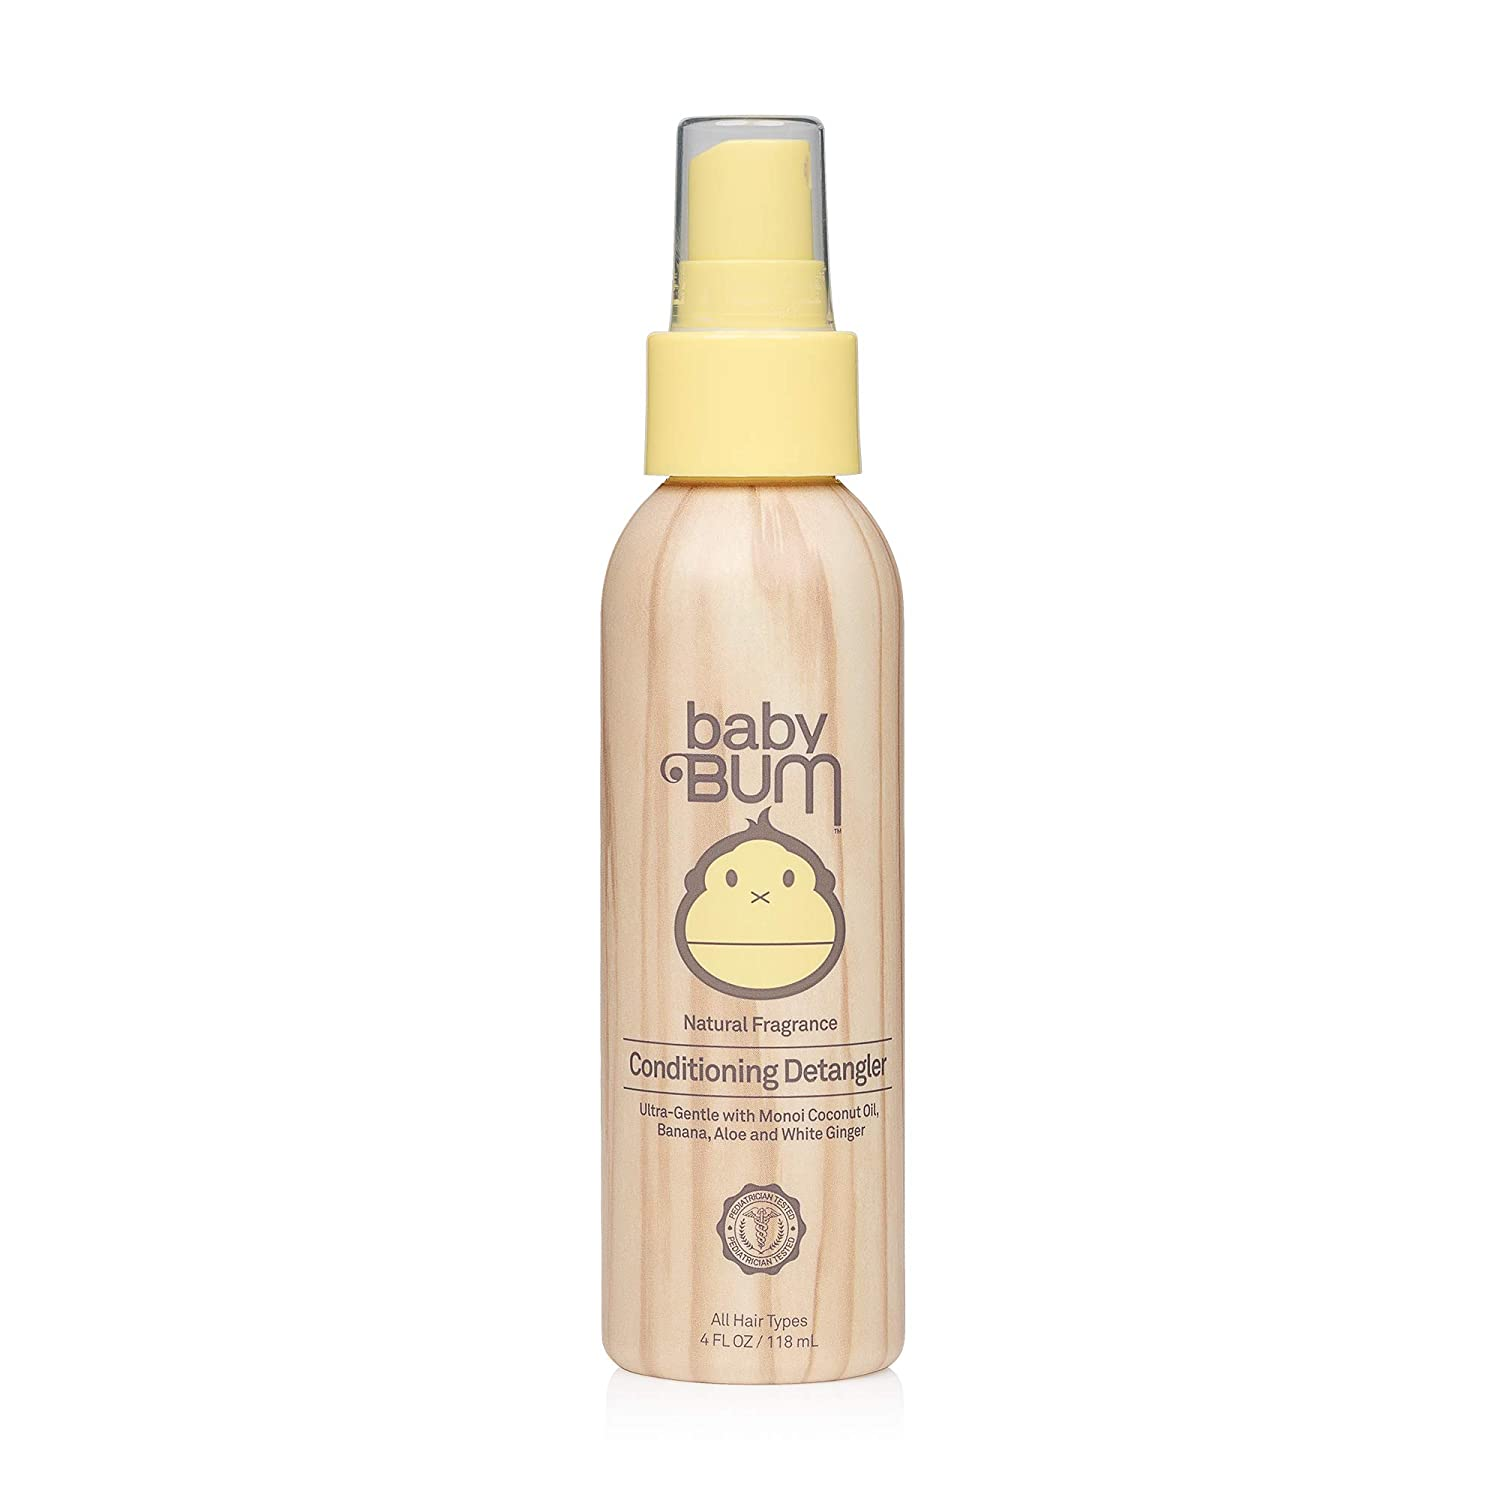 Baby Bum Conditioning Detangler Spray - Leave-in Conditioner – Natural Fragrance - Gentle & Safe with Soothing Coconut Oil - 4 FL OZ